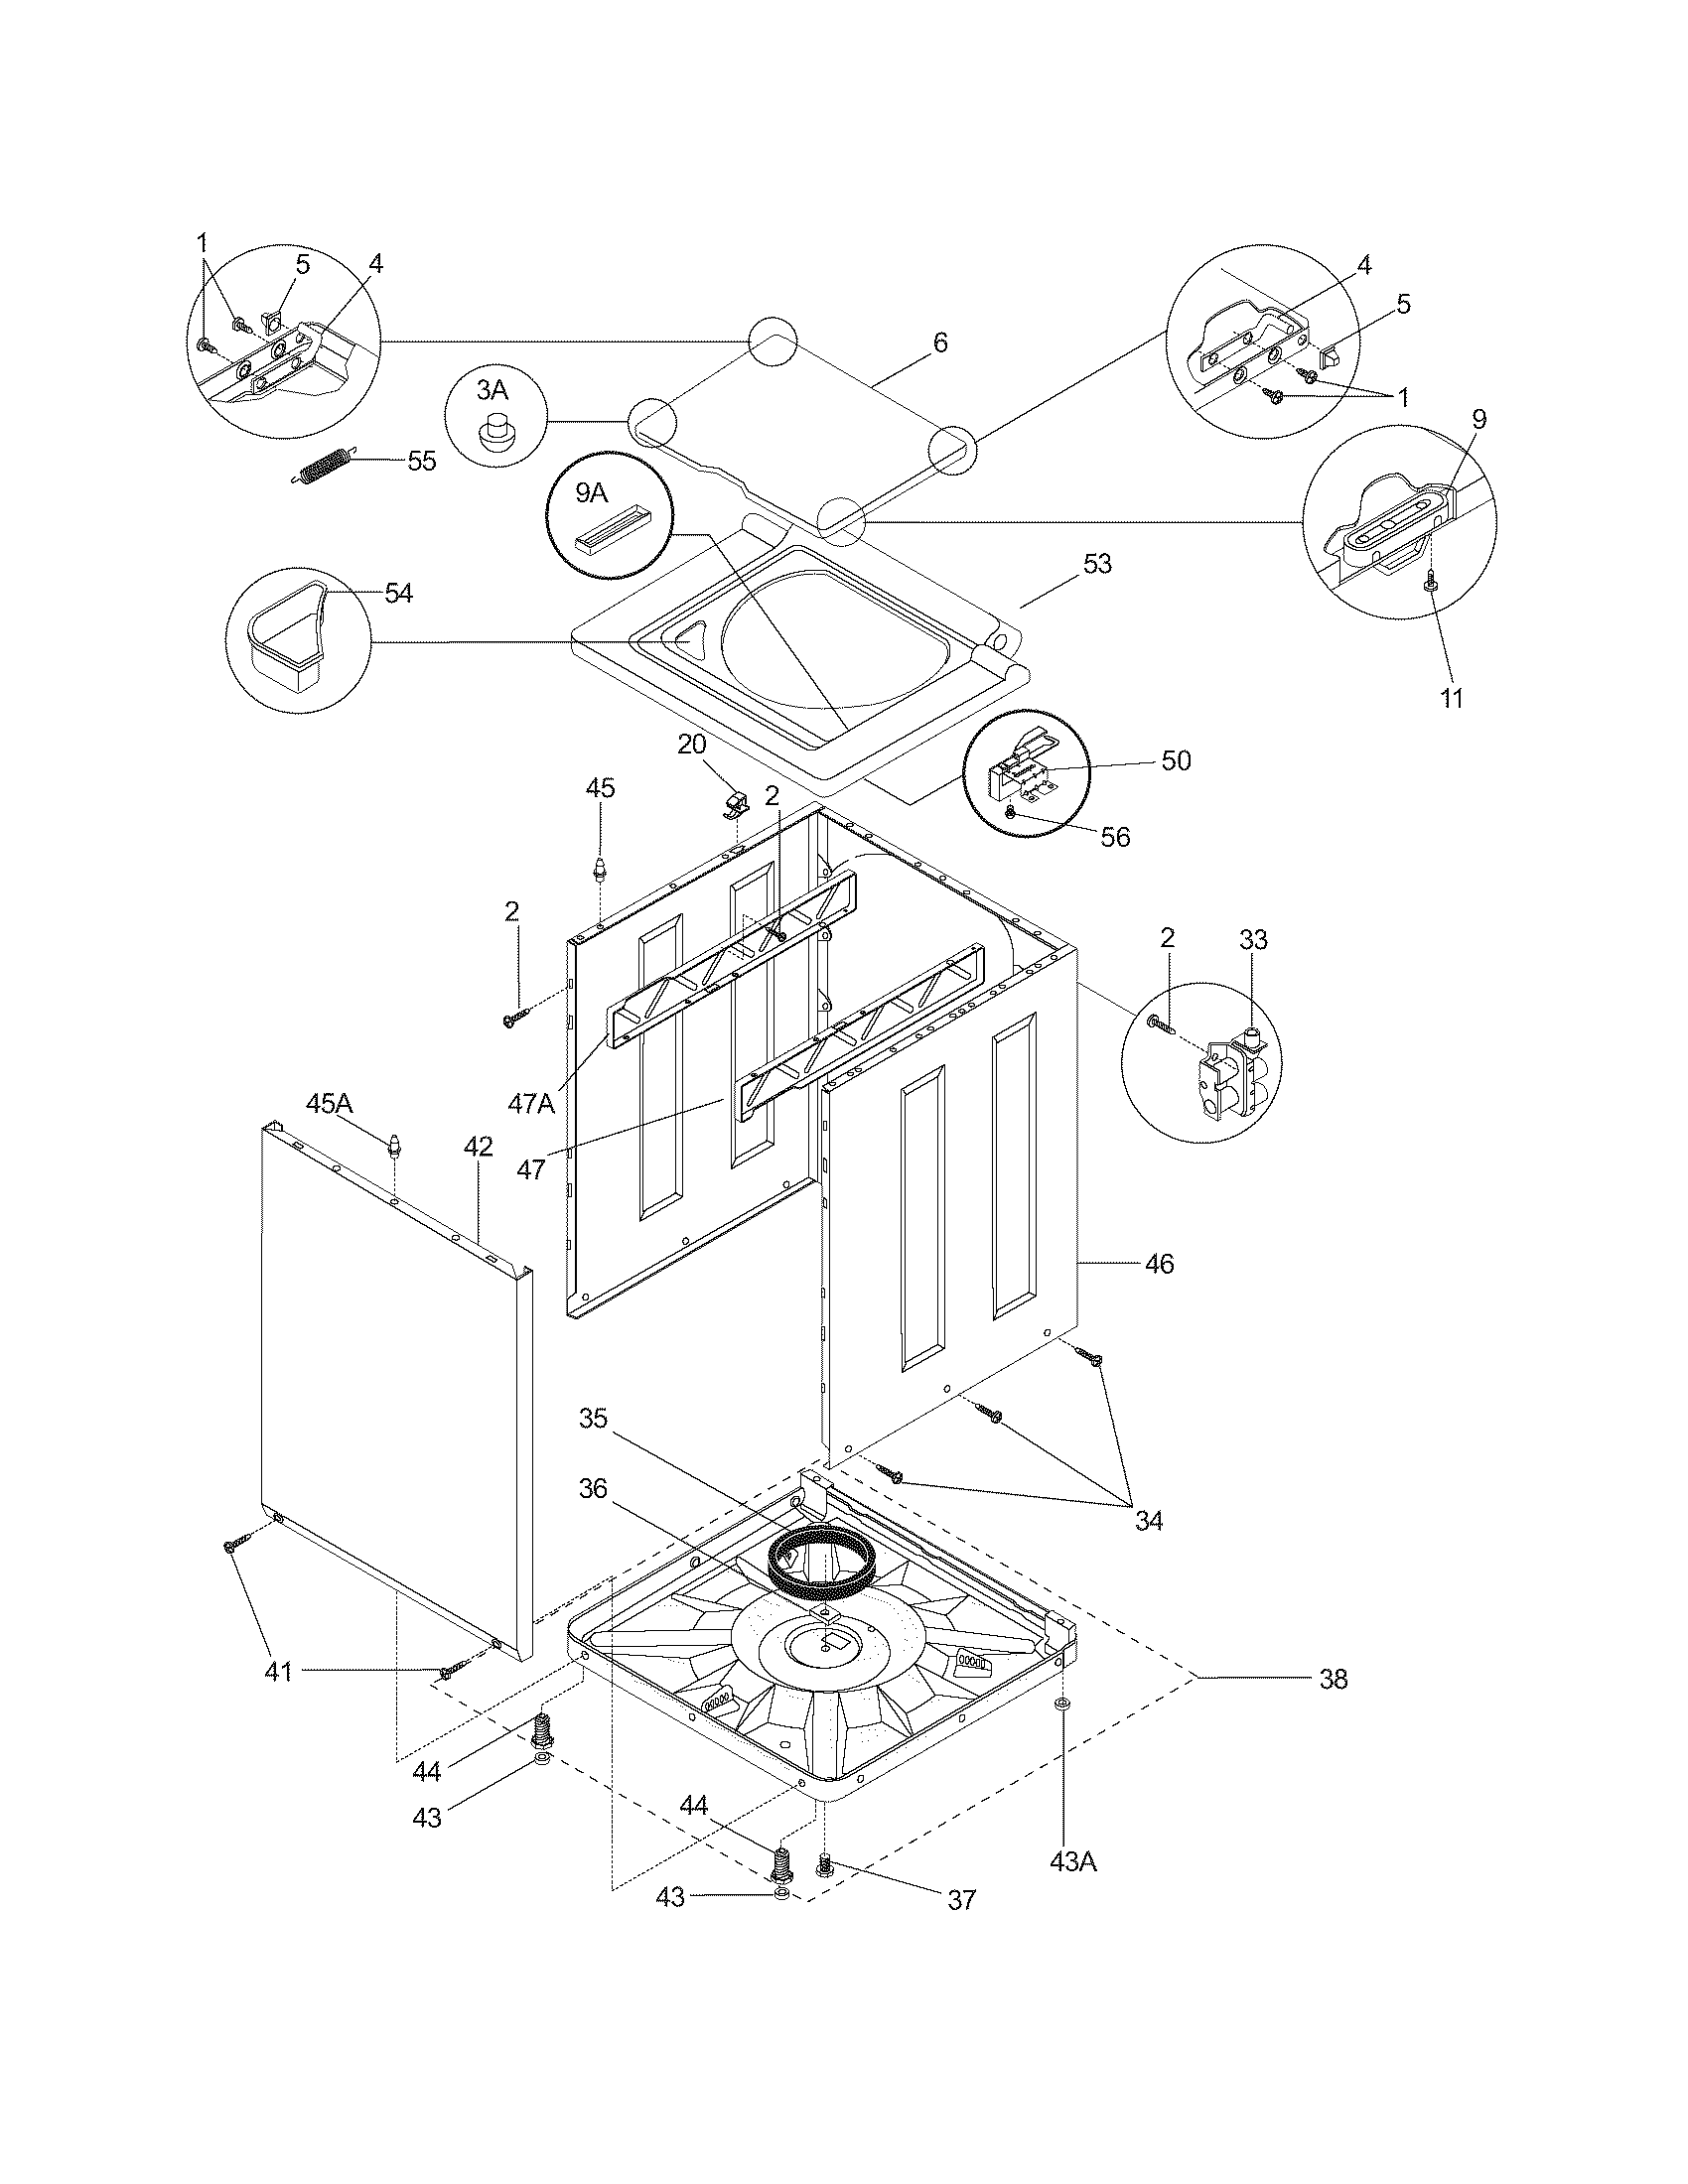 Wiring Diagram For Frigidaire Model Fgx831fs0 Washer Dryer